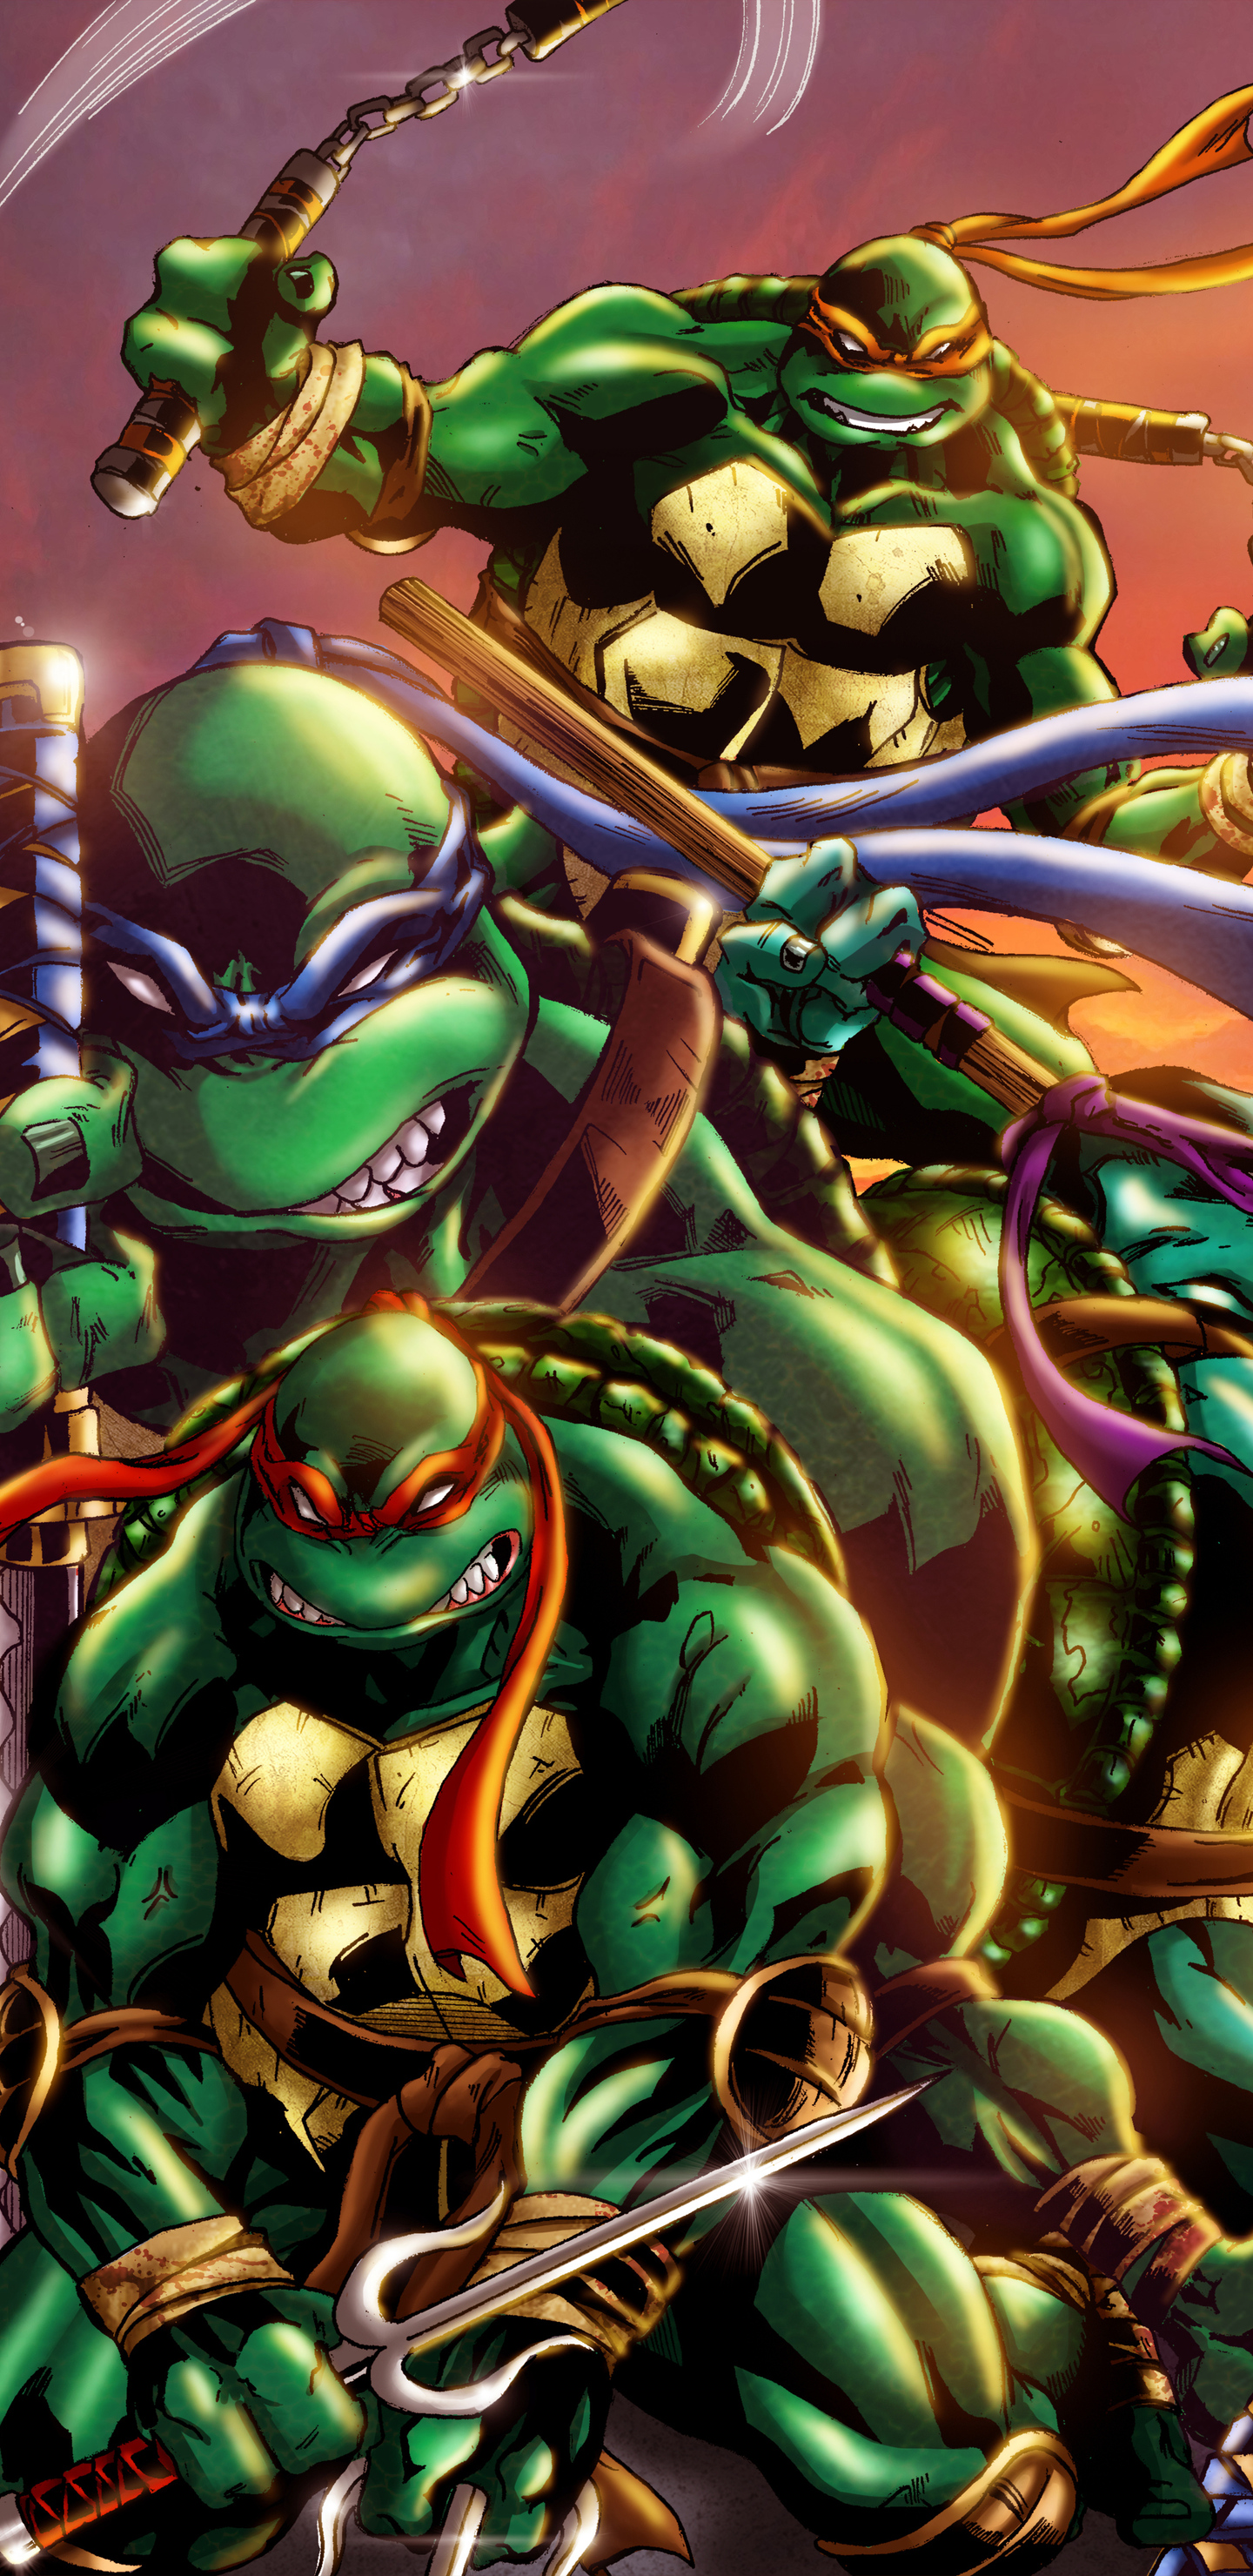 teenage-mutant-ninja-turtles-art-61.jpg